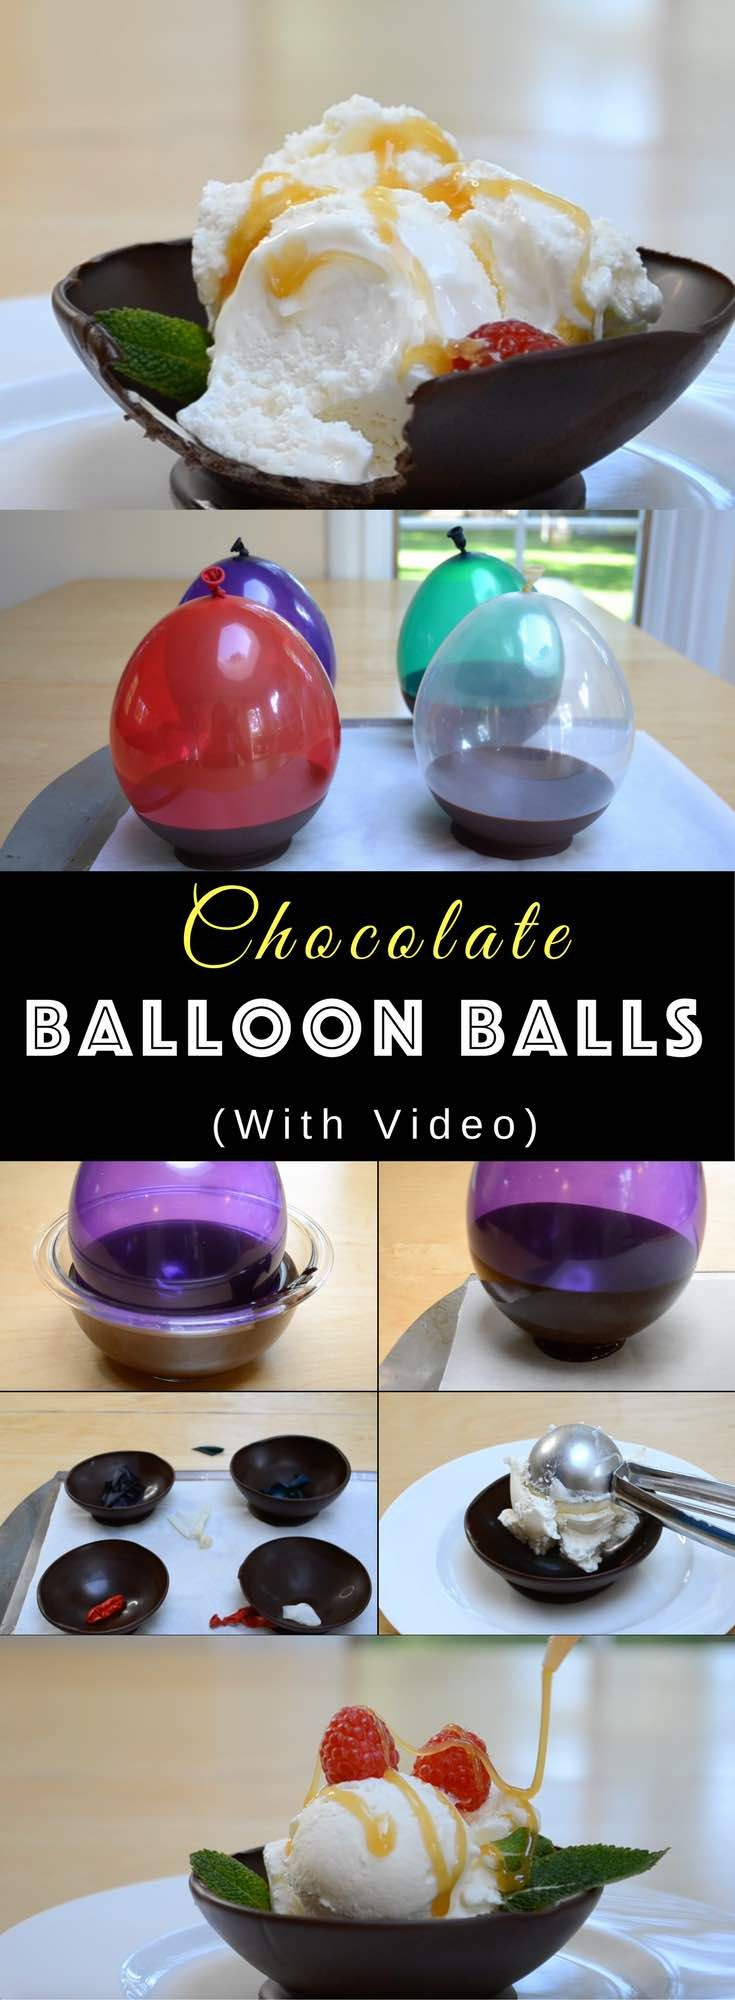 : DIY Chocolate Balloon Bowls – Edible bowls made of chocolate using ballons! Special trick using balloons make it really easy to shape the chocolate into bowls. So cool! Quick and easy recipe, no bake dessert, mother's day recipe, holiday party video recipe. | Tipbuzz.com